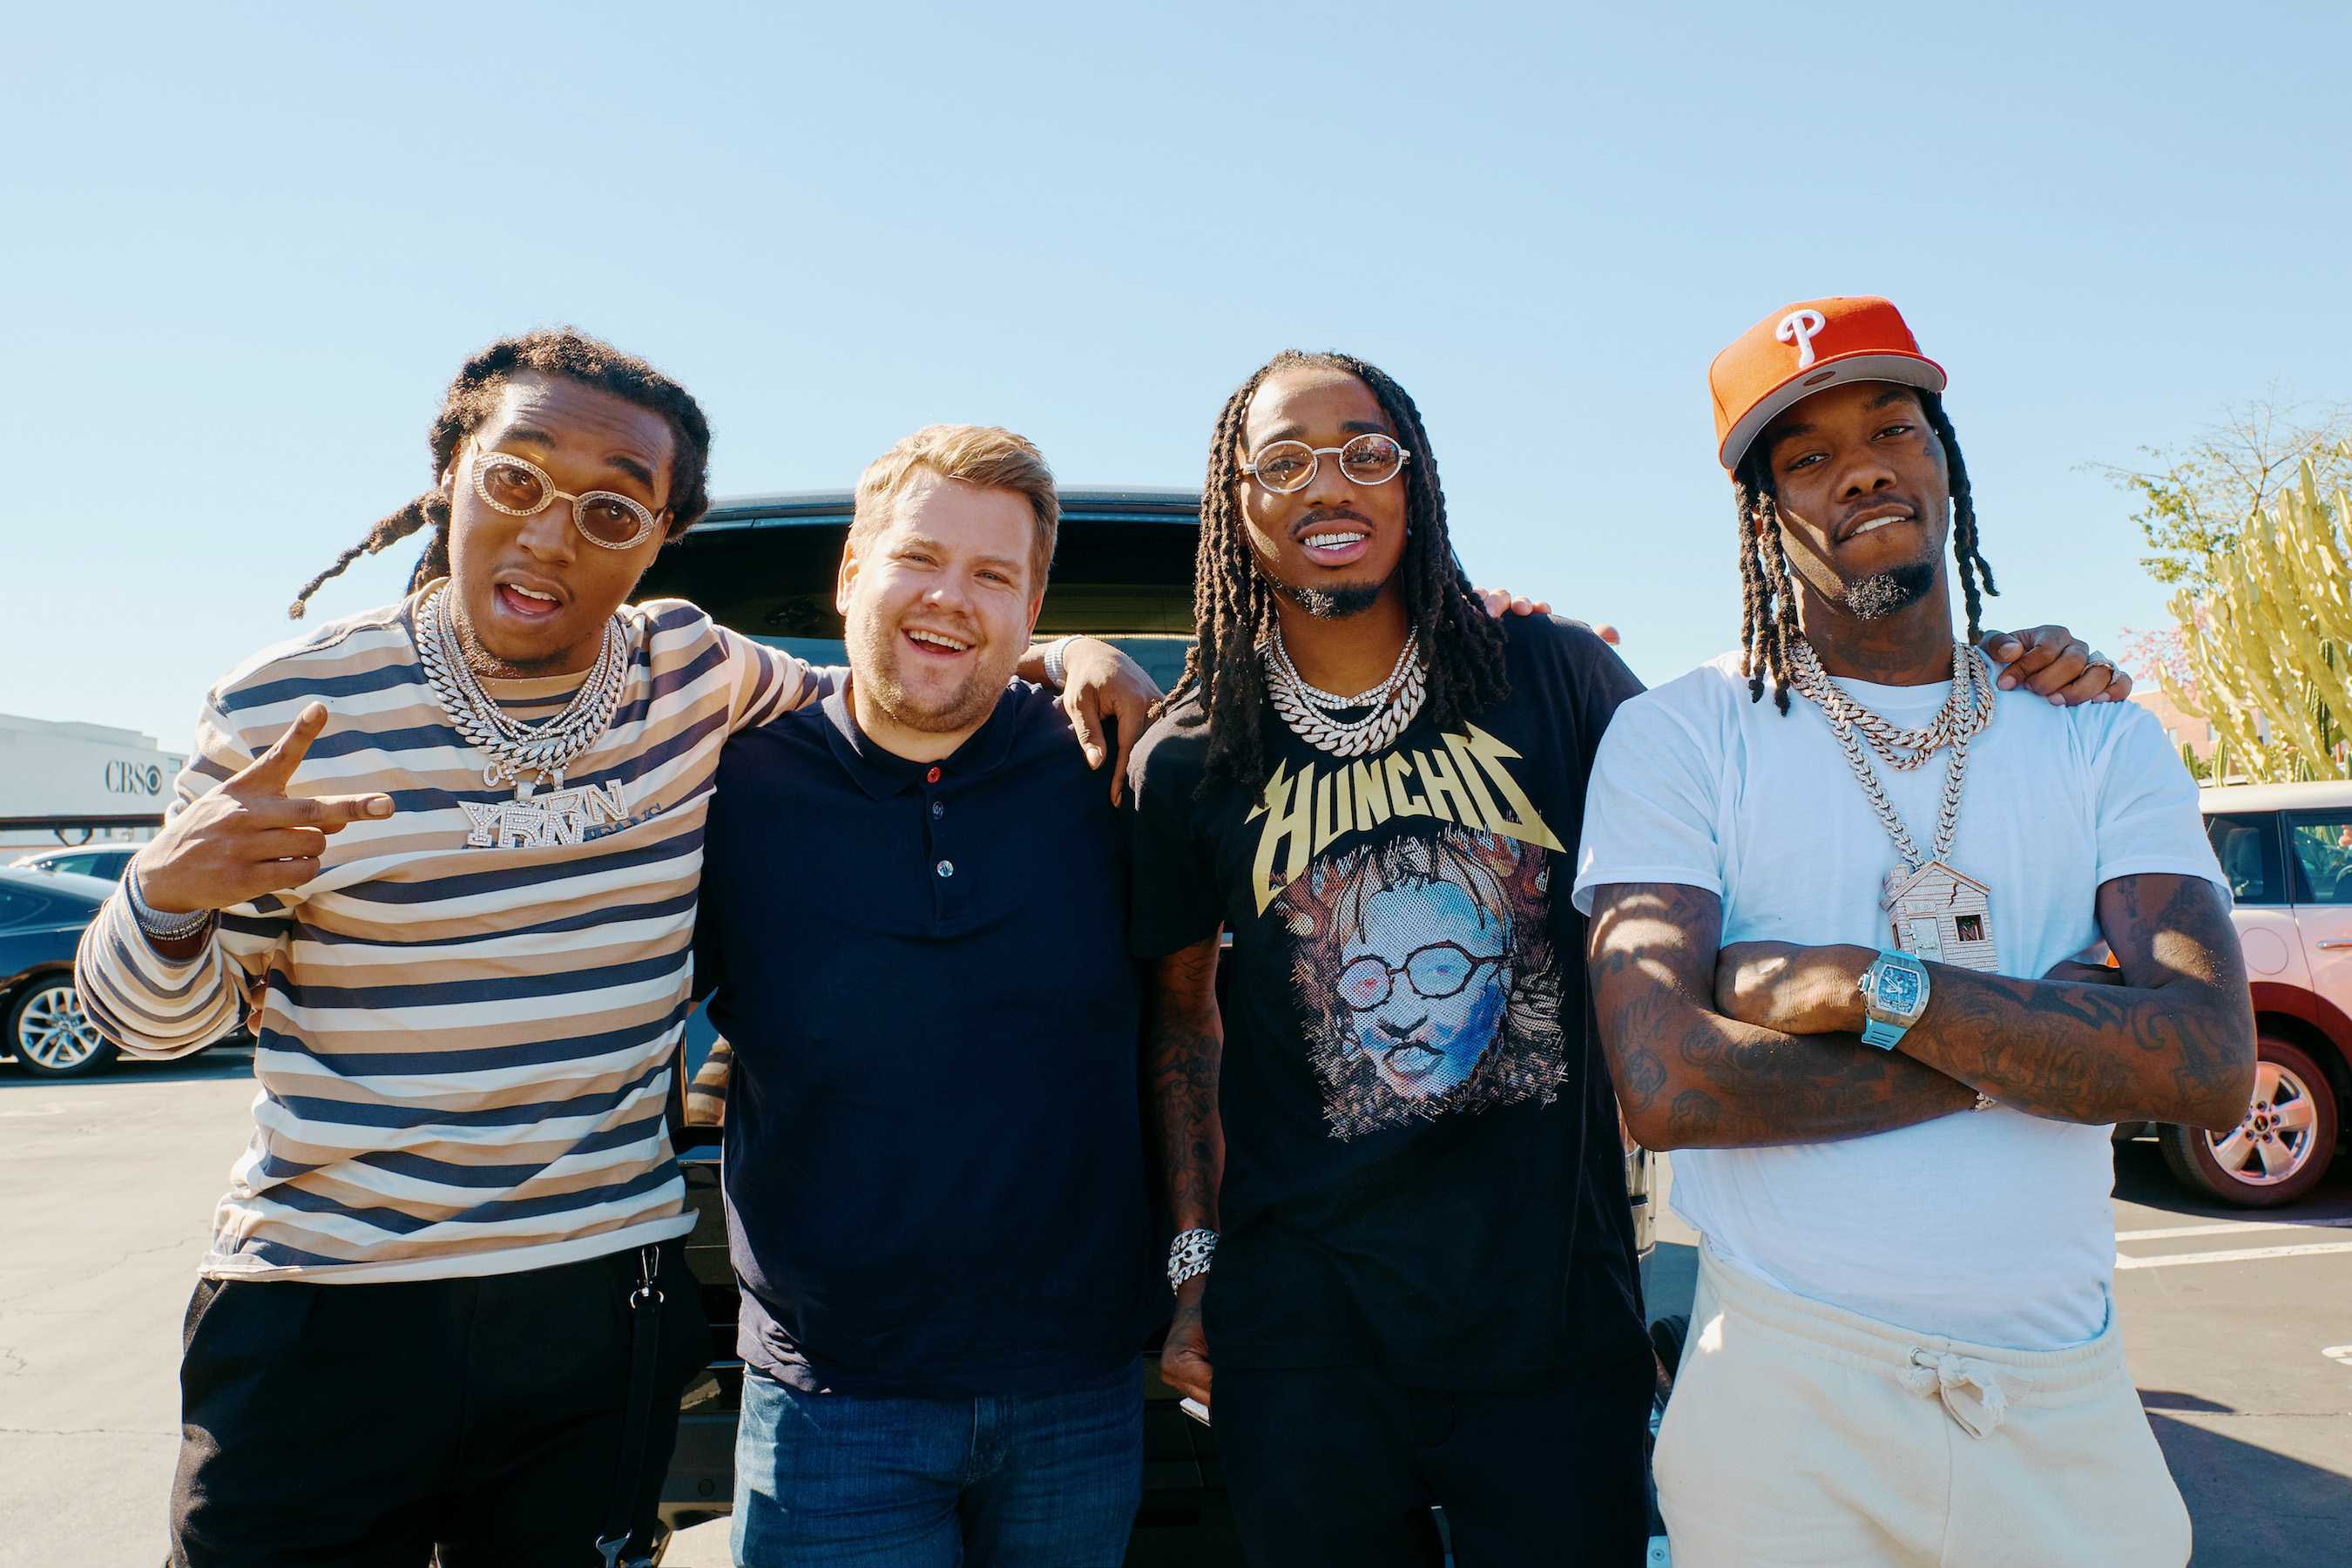 Migos featuring James Corden